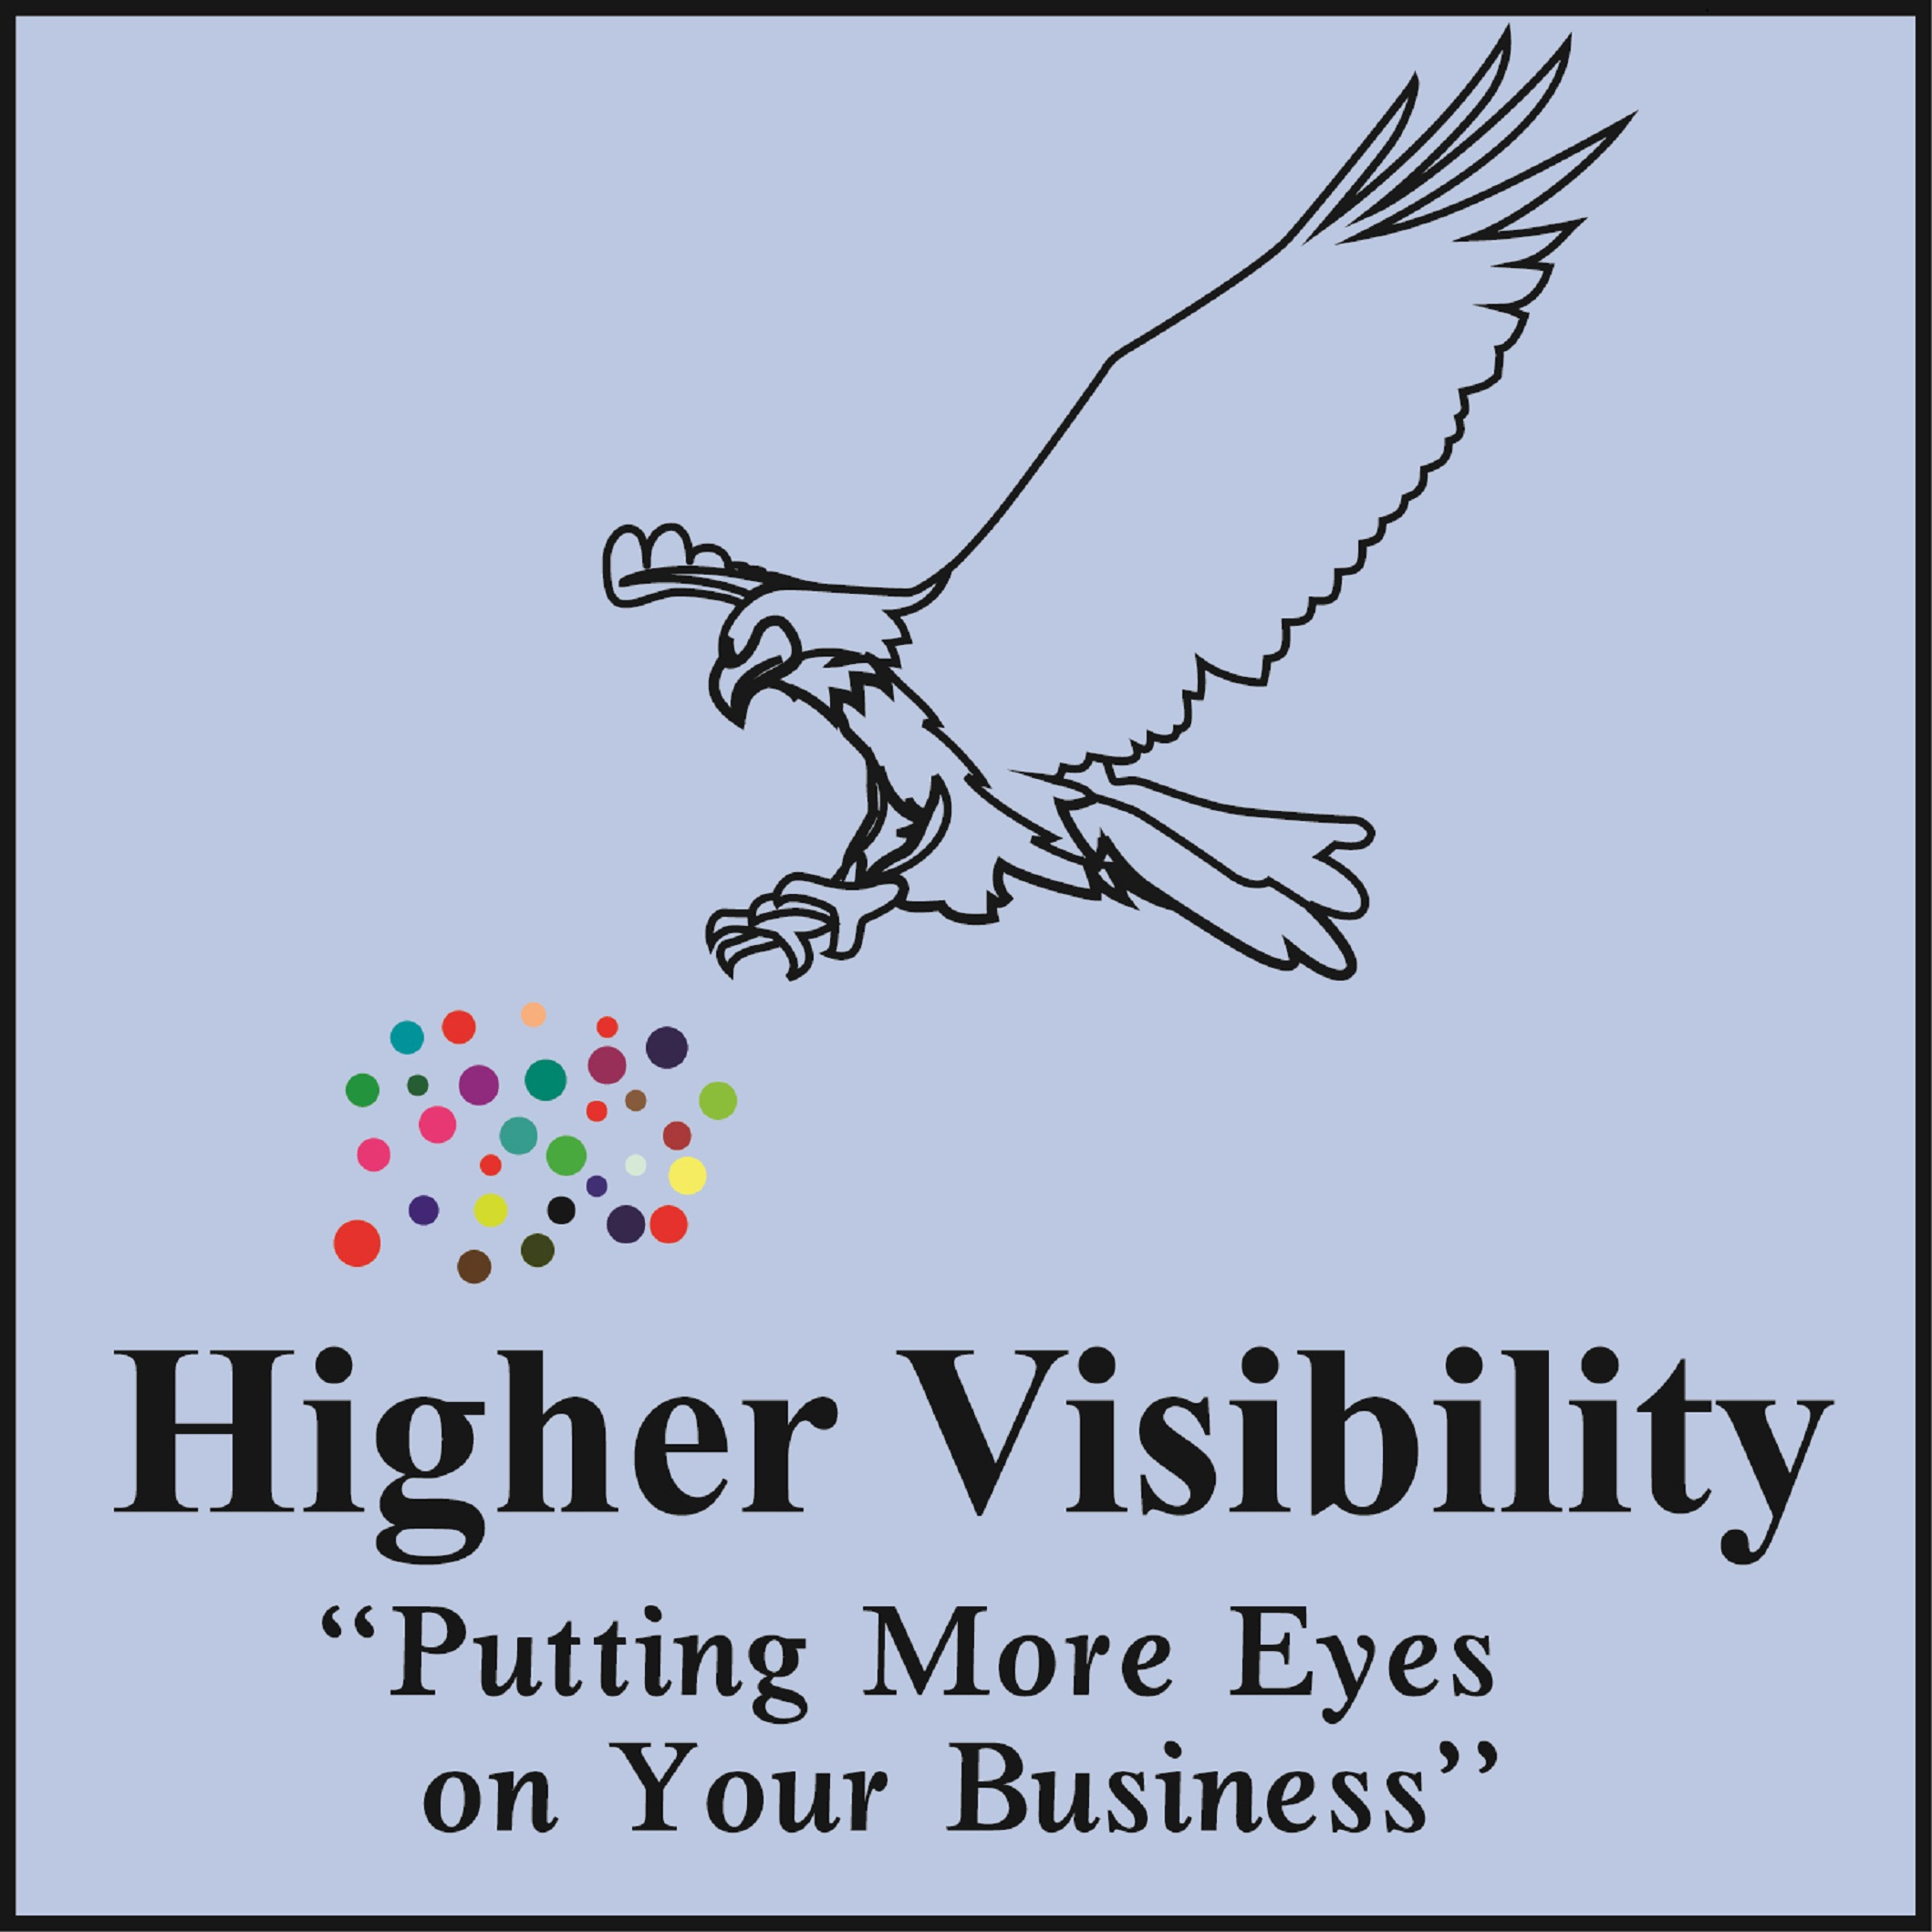 Higher Visibility